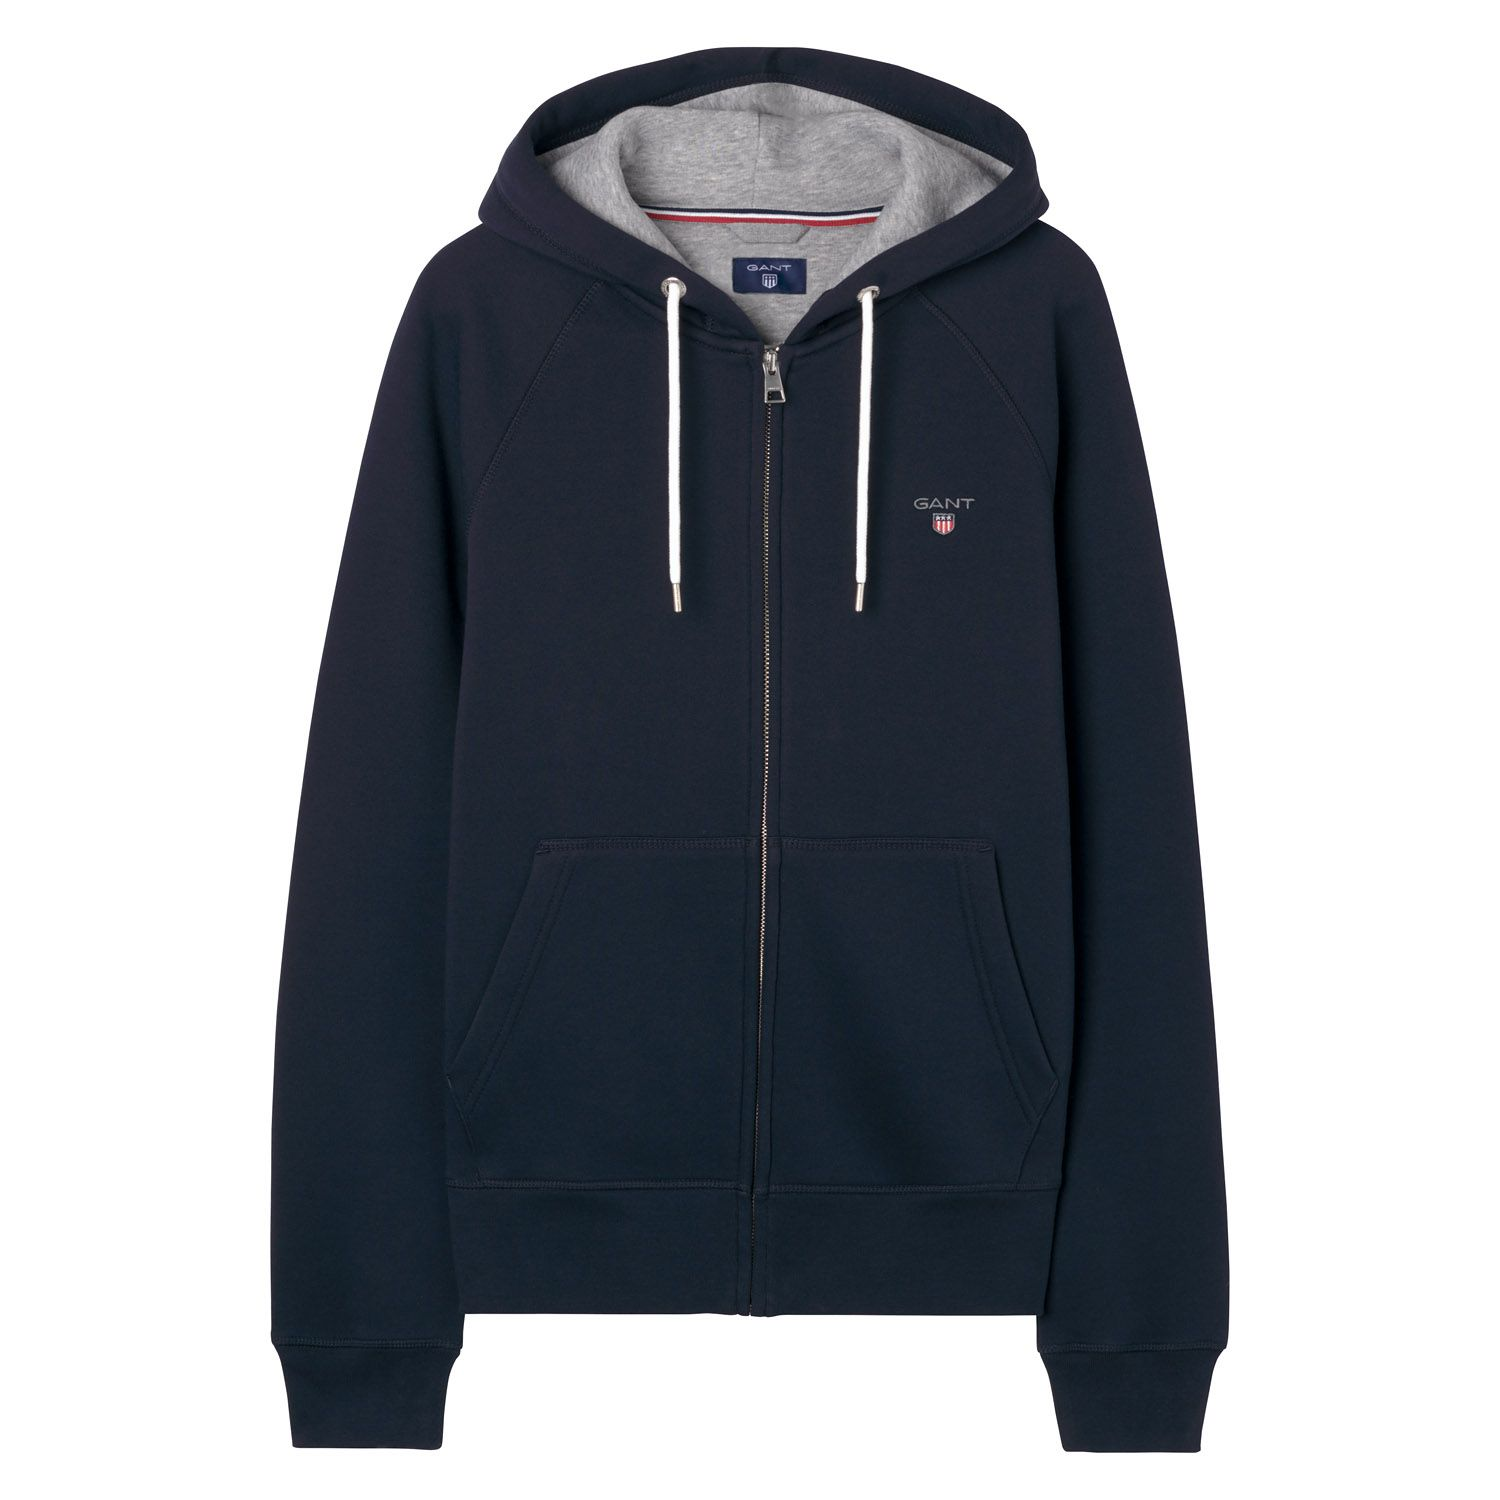 GANT Evening Blue preppy essentials Original Fullzip Sweat Hoodie